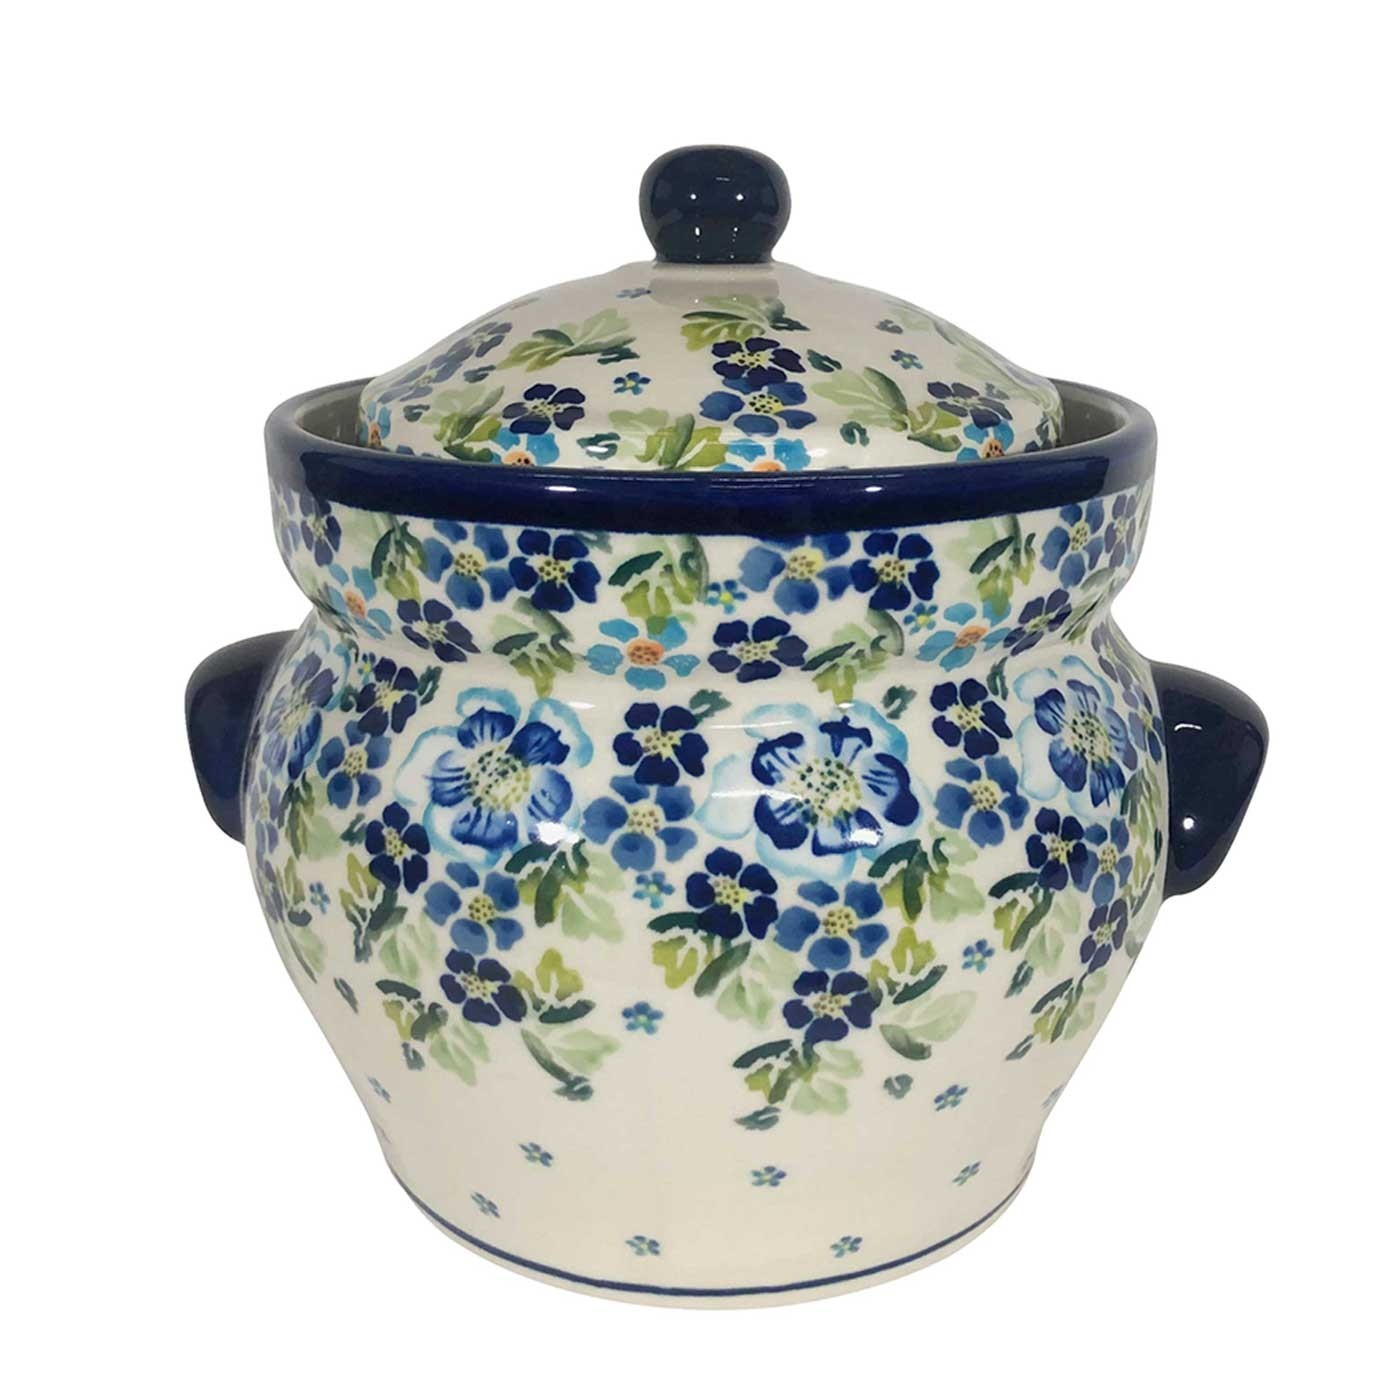 Pottery Avenue 16-cup Stoneware Canister - 1127-DU207 True Blues